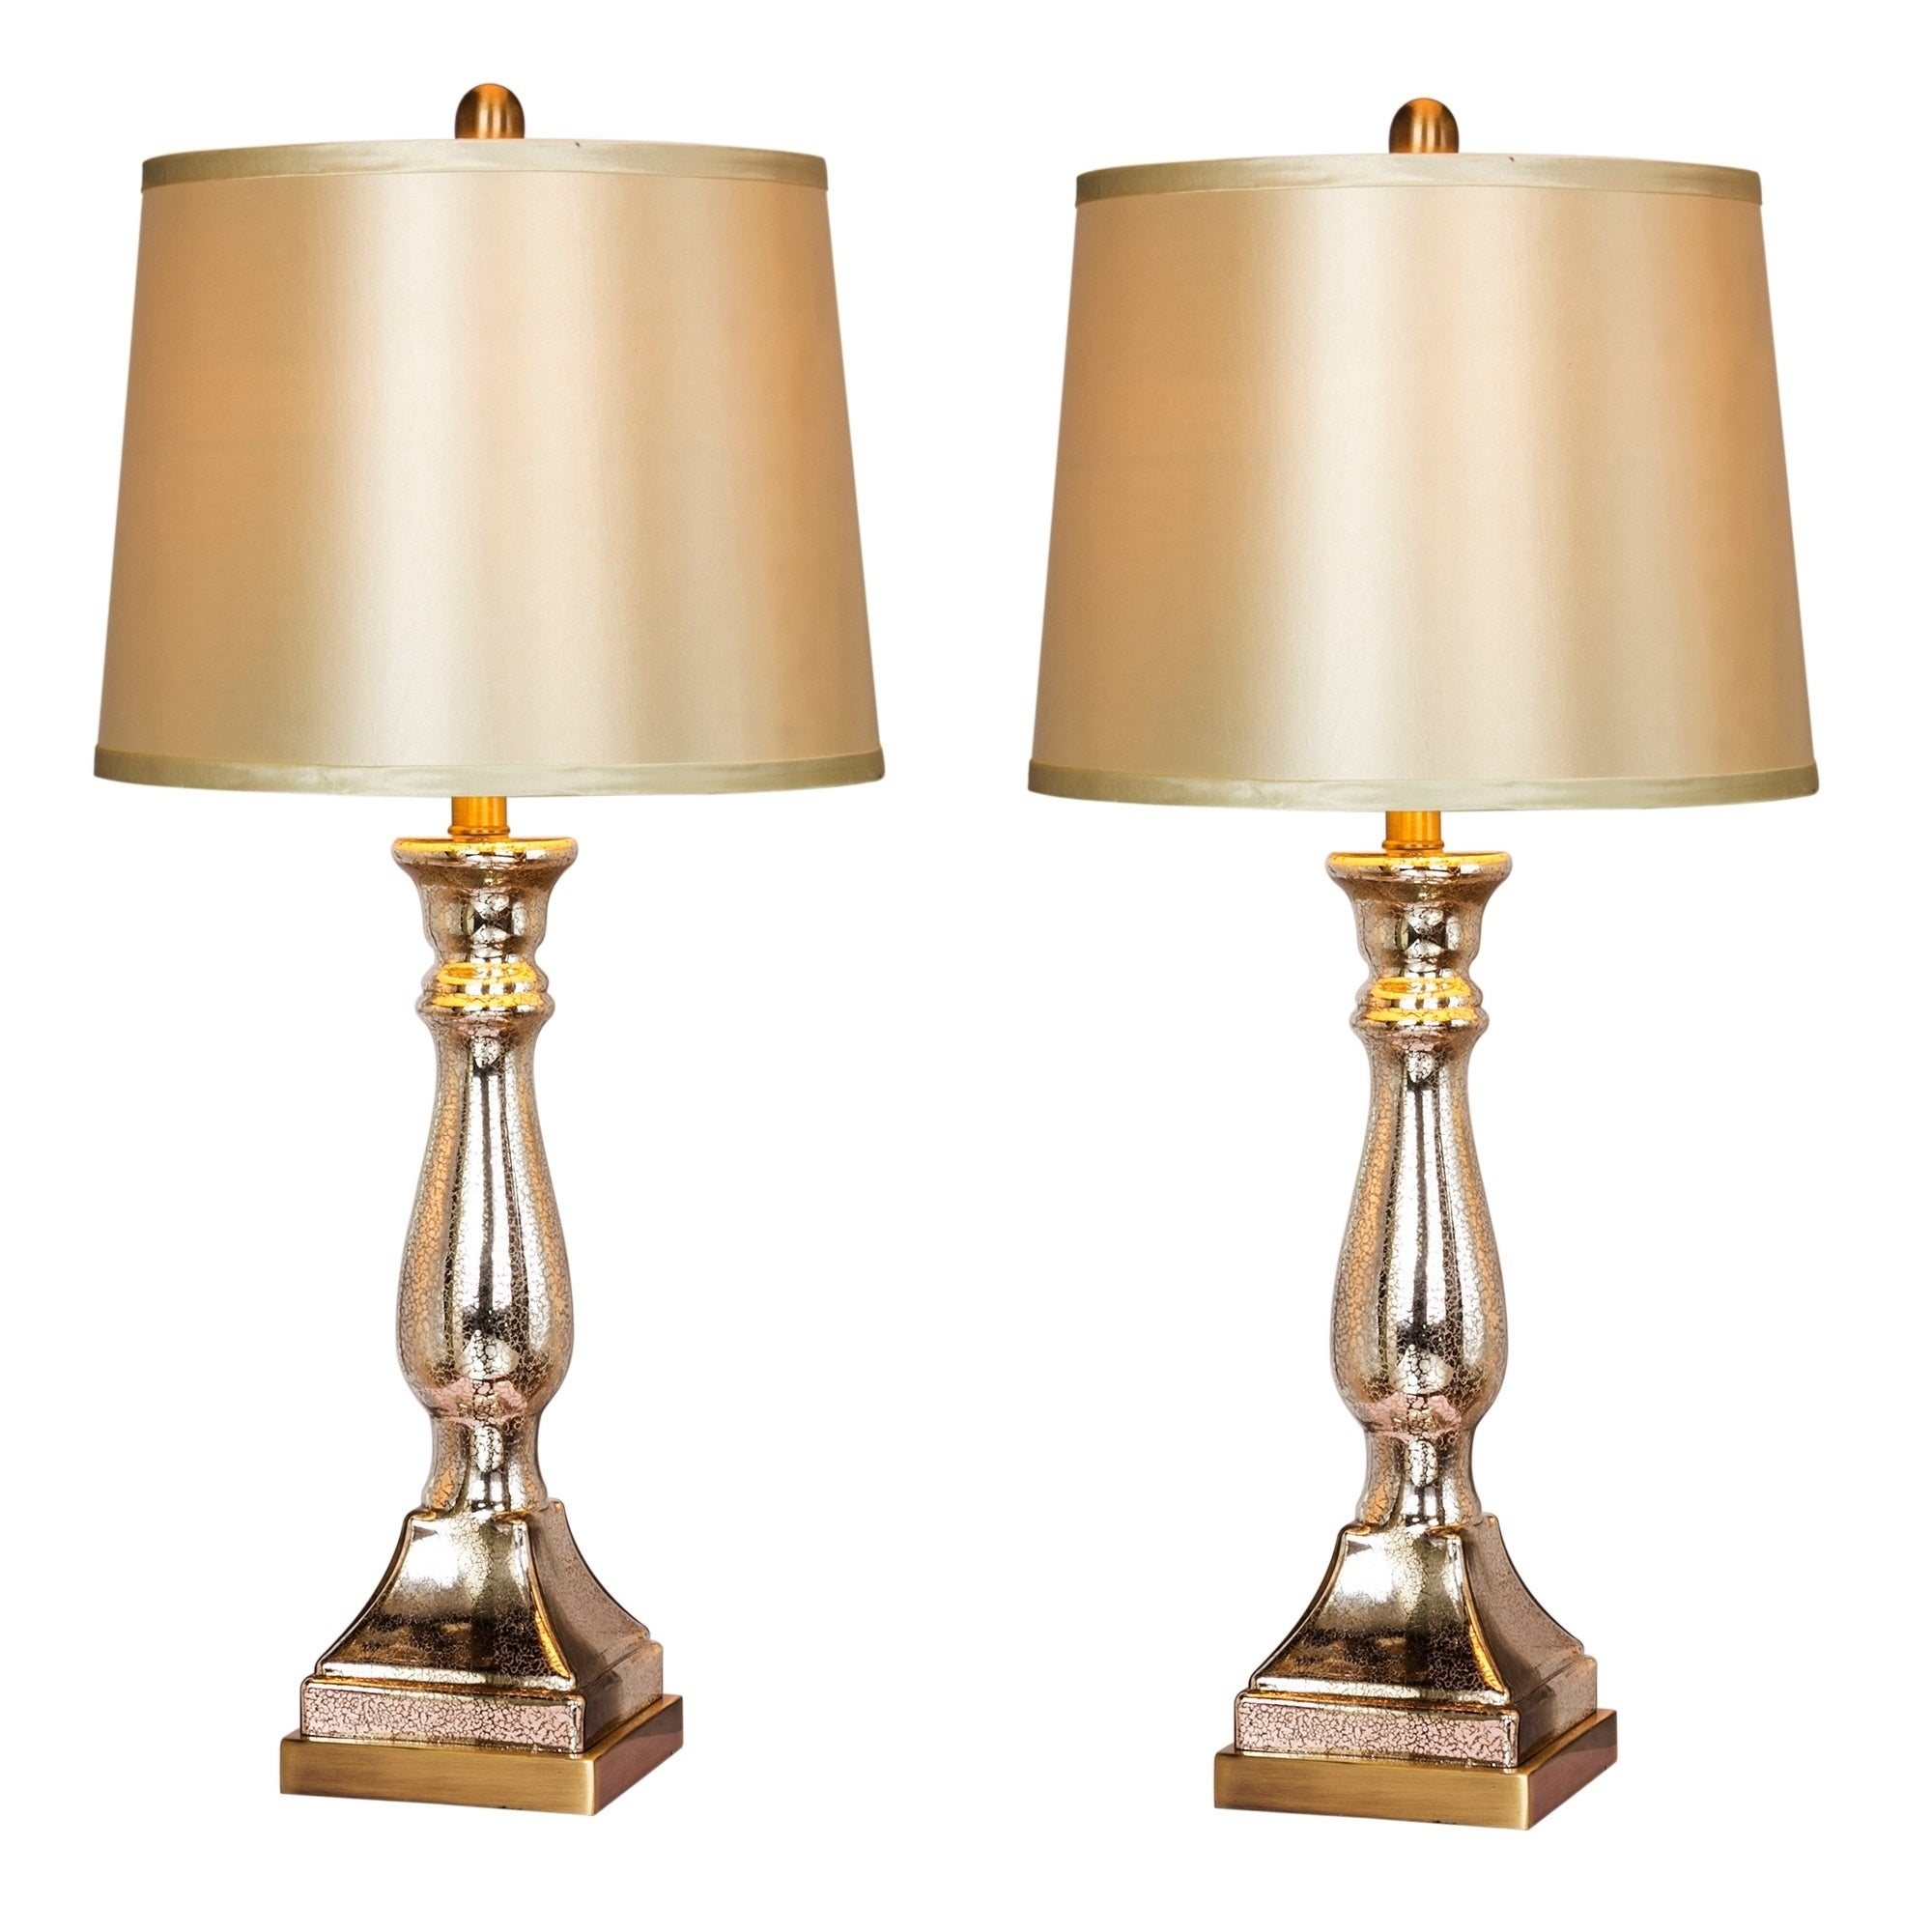 Fangio Lighting S 5160 Pair Of 28in Glass Antique Brass Table Lamps Overstock 24121053